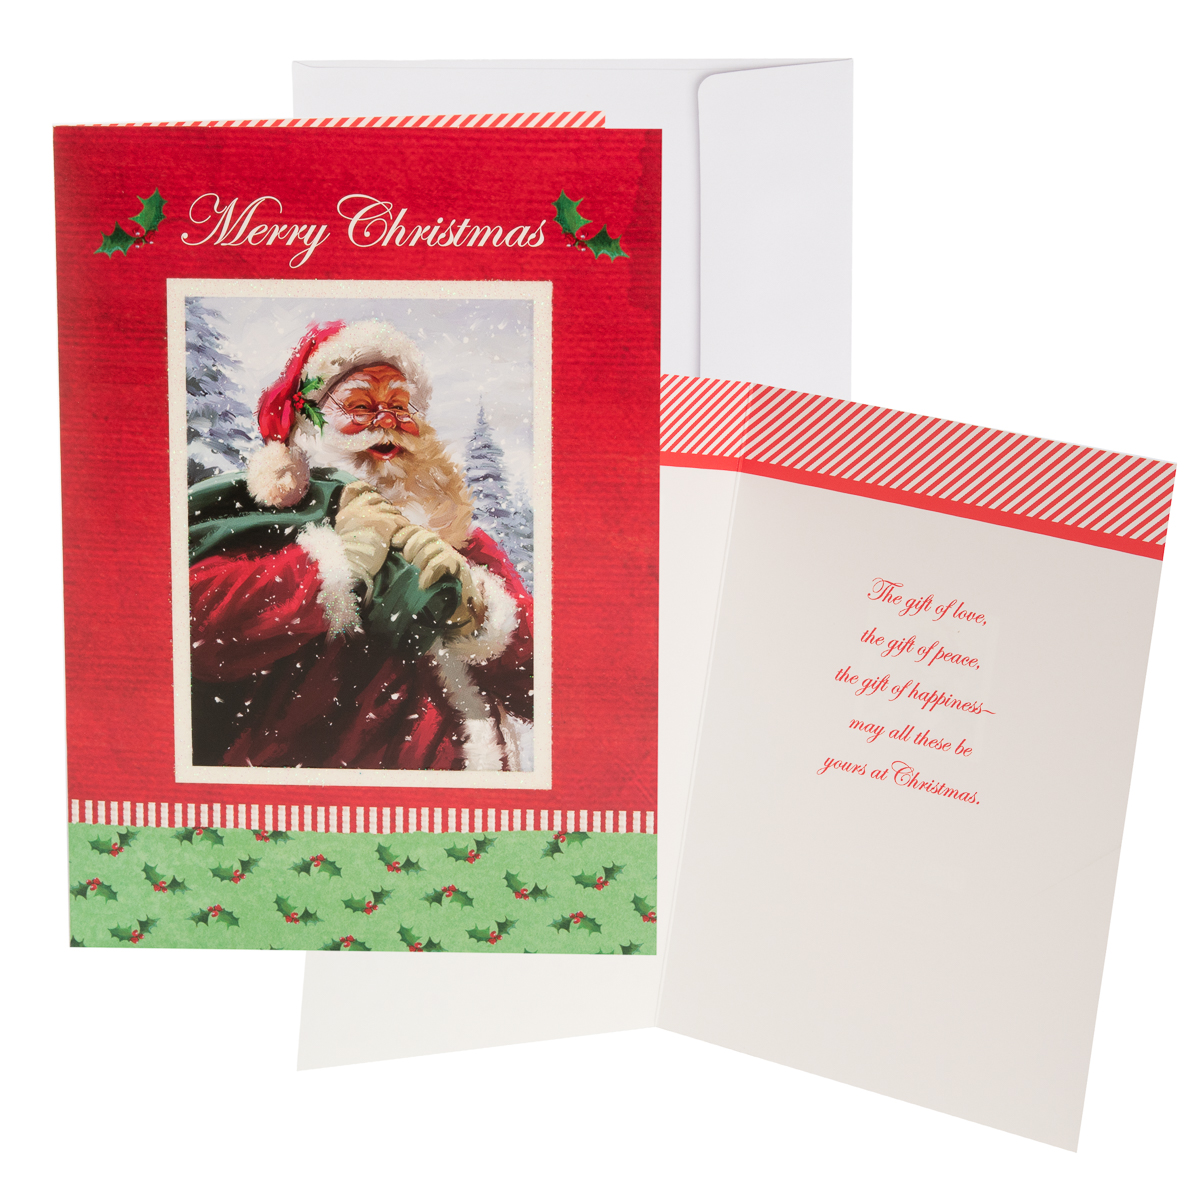 48pk-Merry-Christmas-Cards-Bulk-Assortment-Holiday-Card-Pack-with-Foil-amp-Glitter thumbnail 29